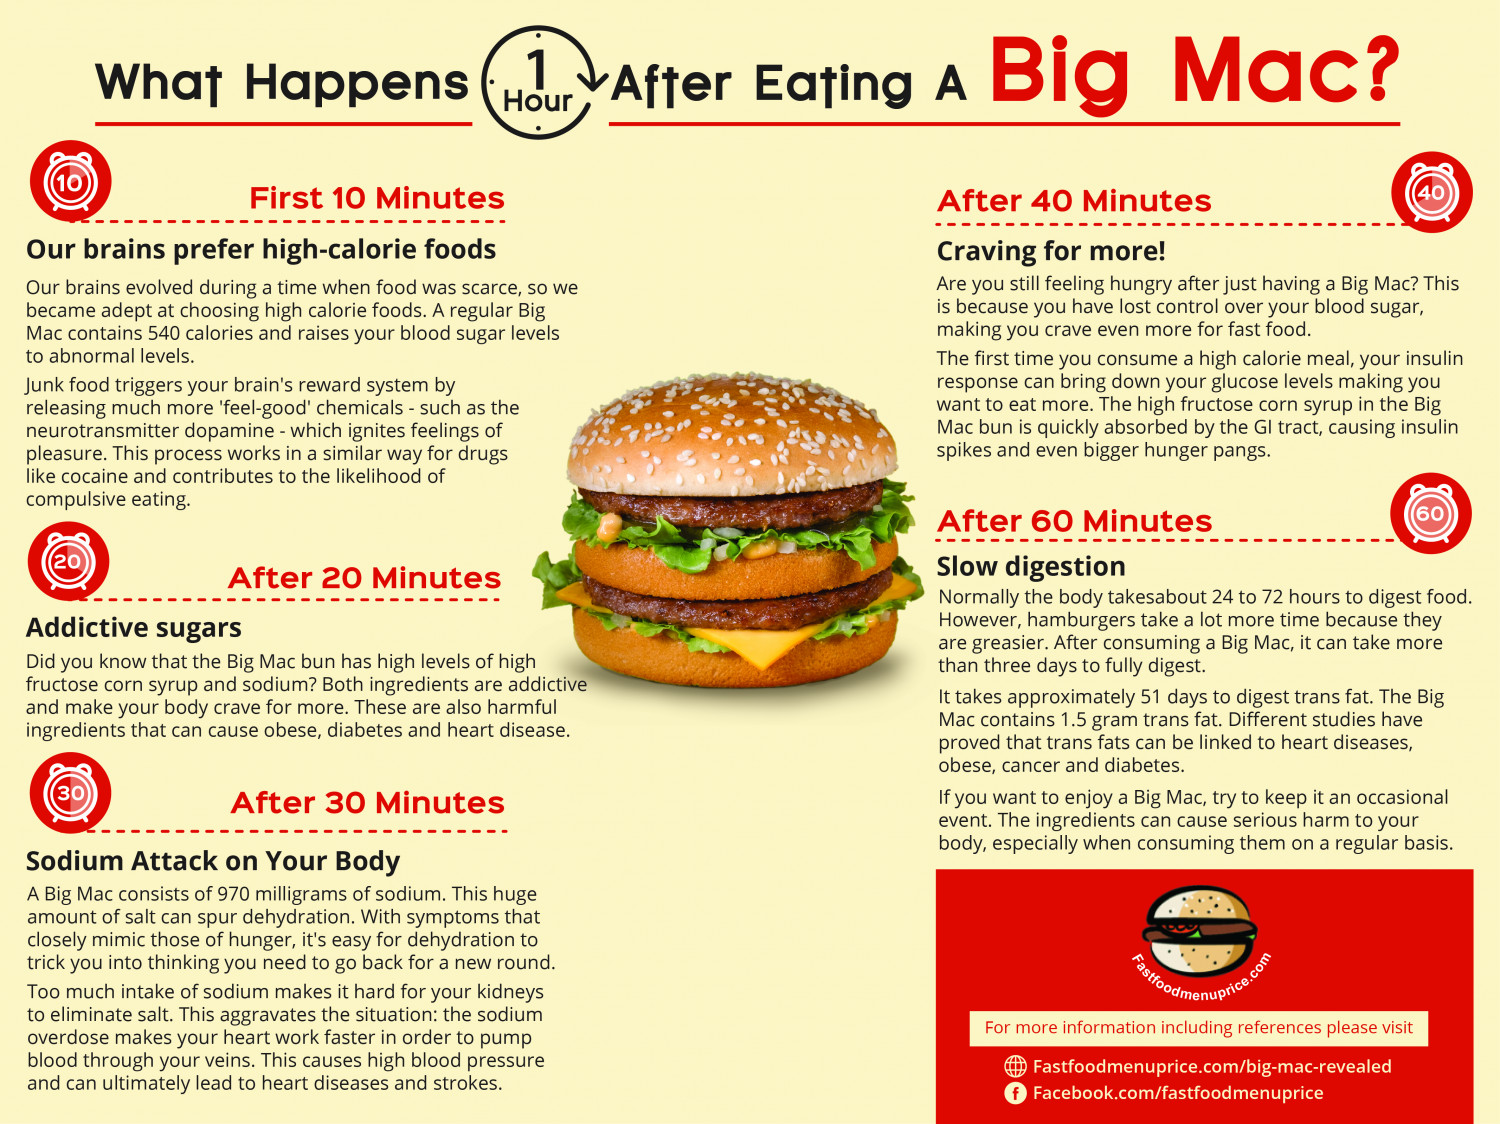 What Happens One Hour After Eating A Big Mac? Infographic